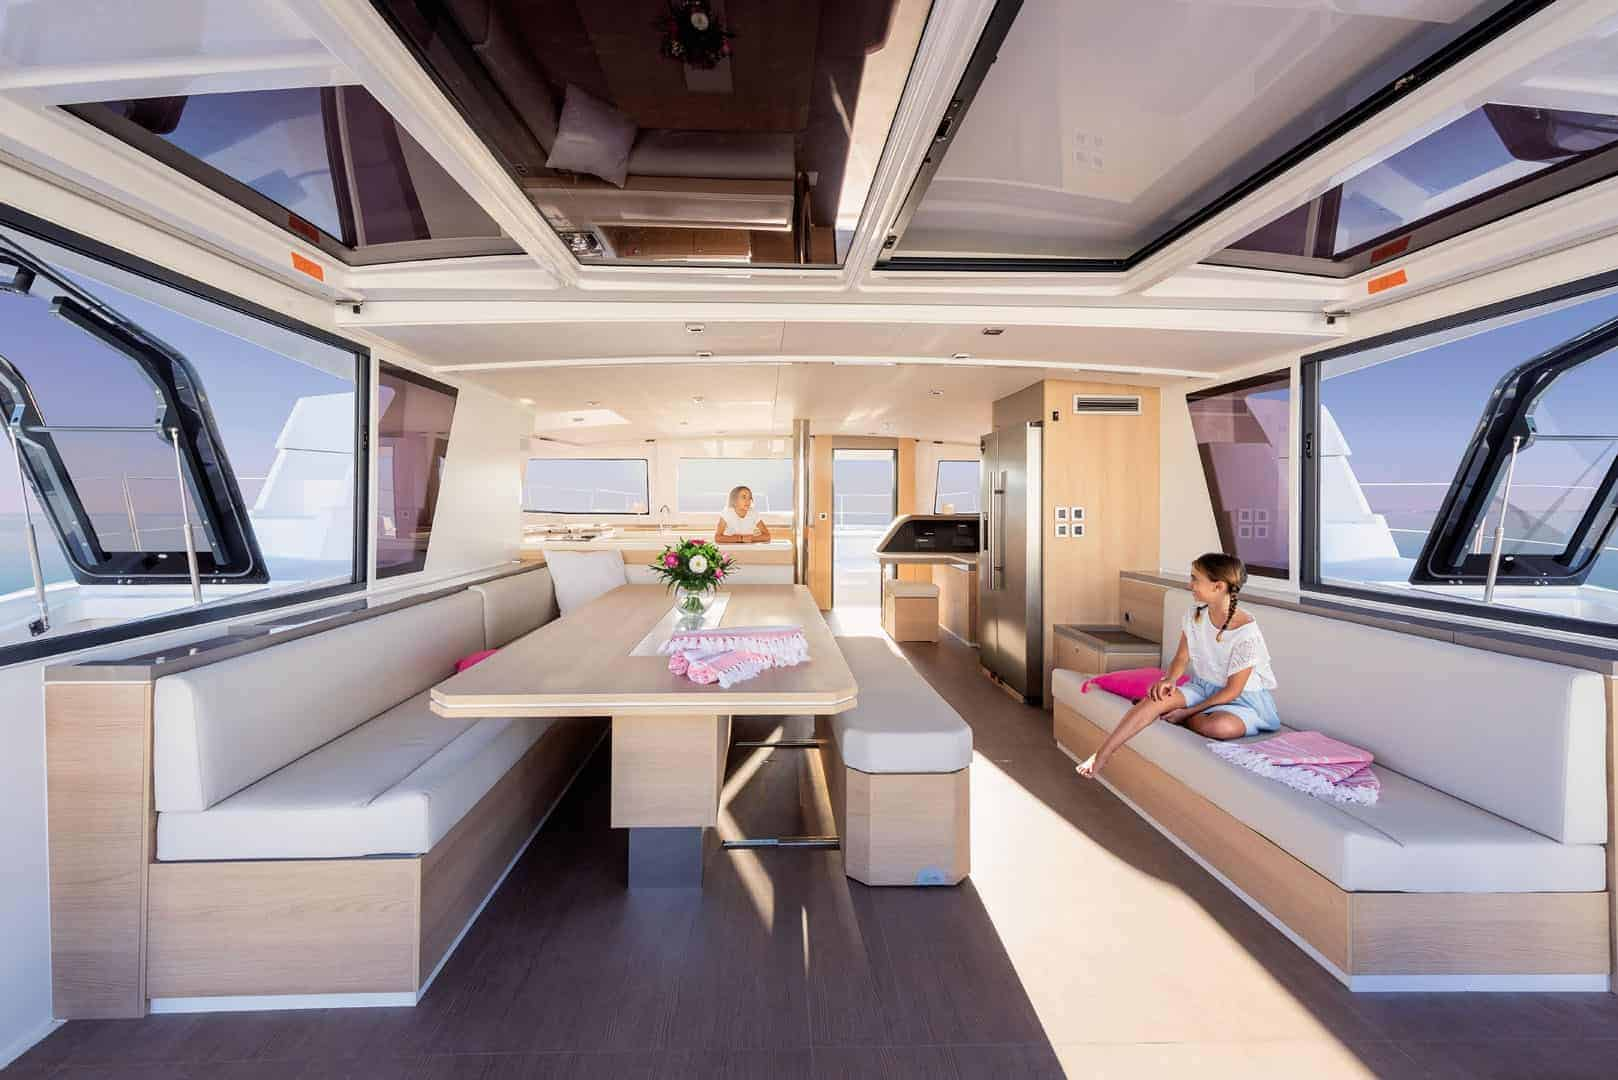 Spacious and elegant cockpit of the Bali 5.4 with two girls chatting with each other